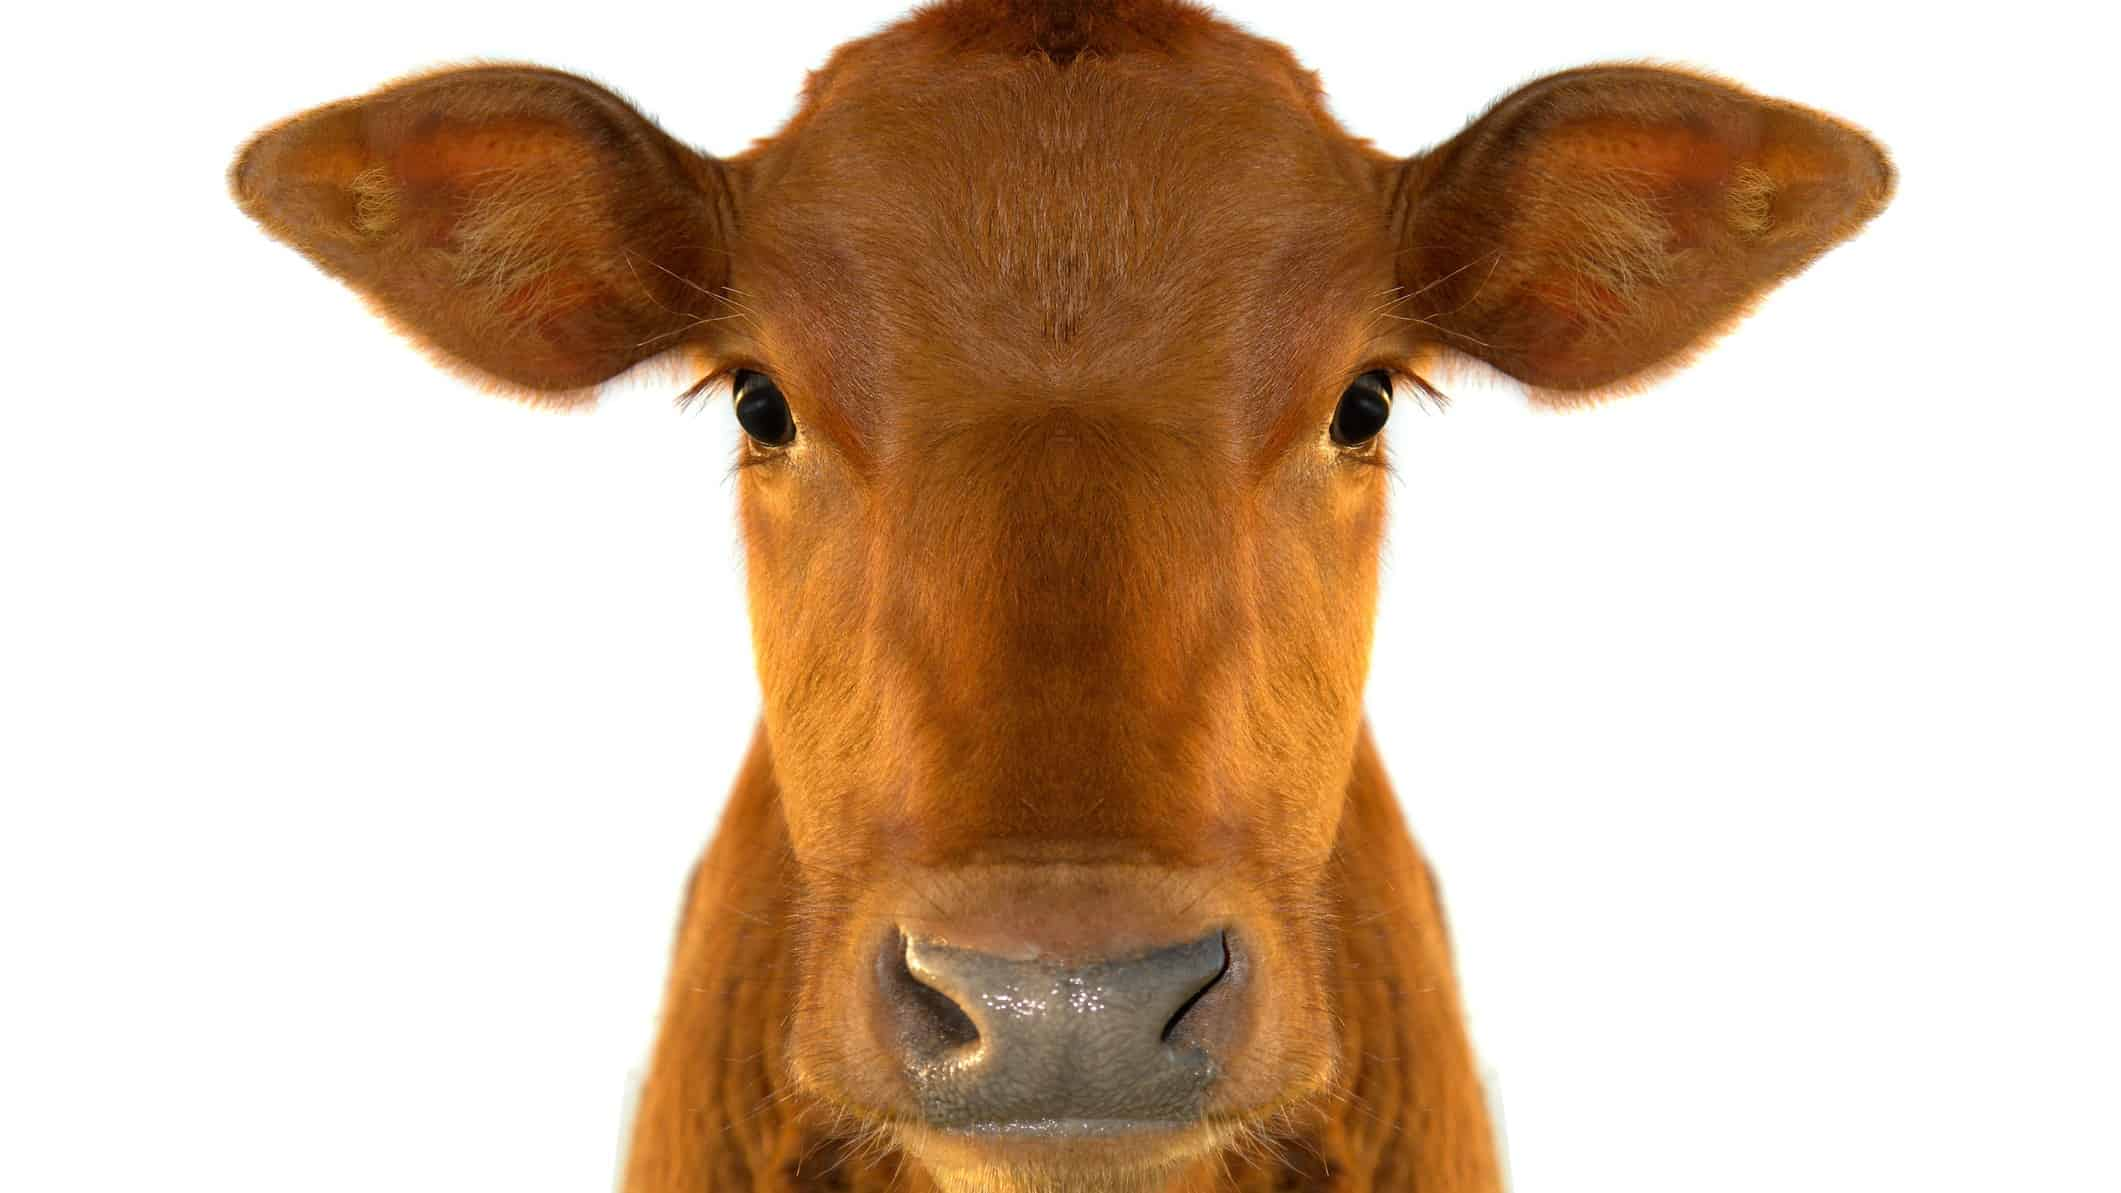 dairy asx share price represented by happy looking cow close up